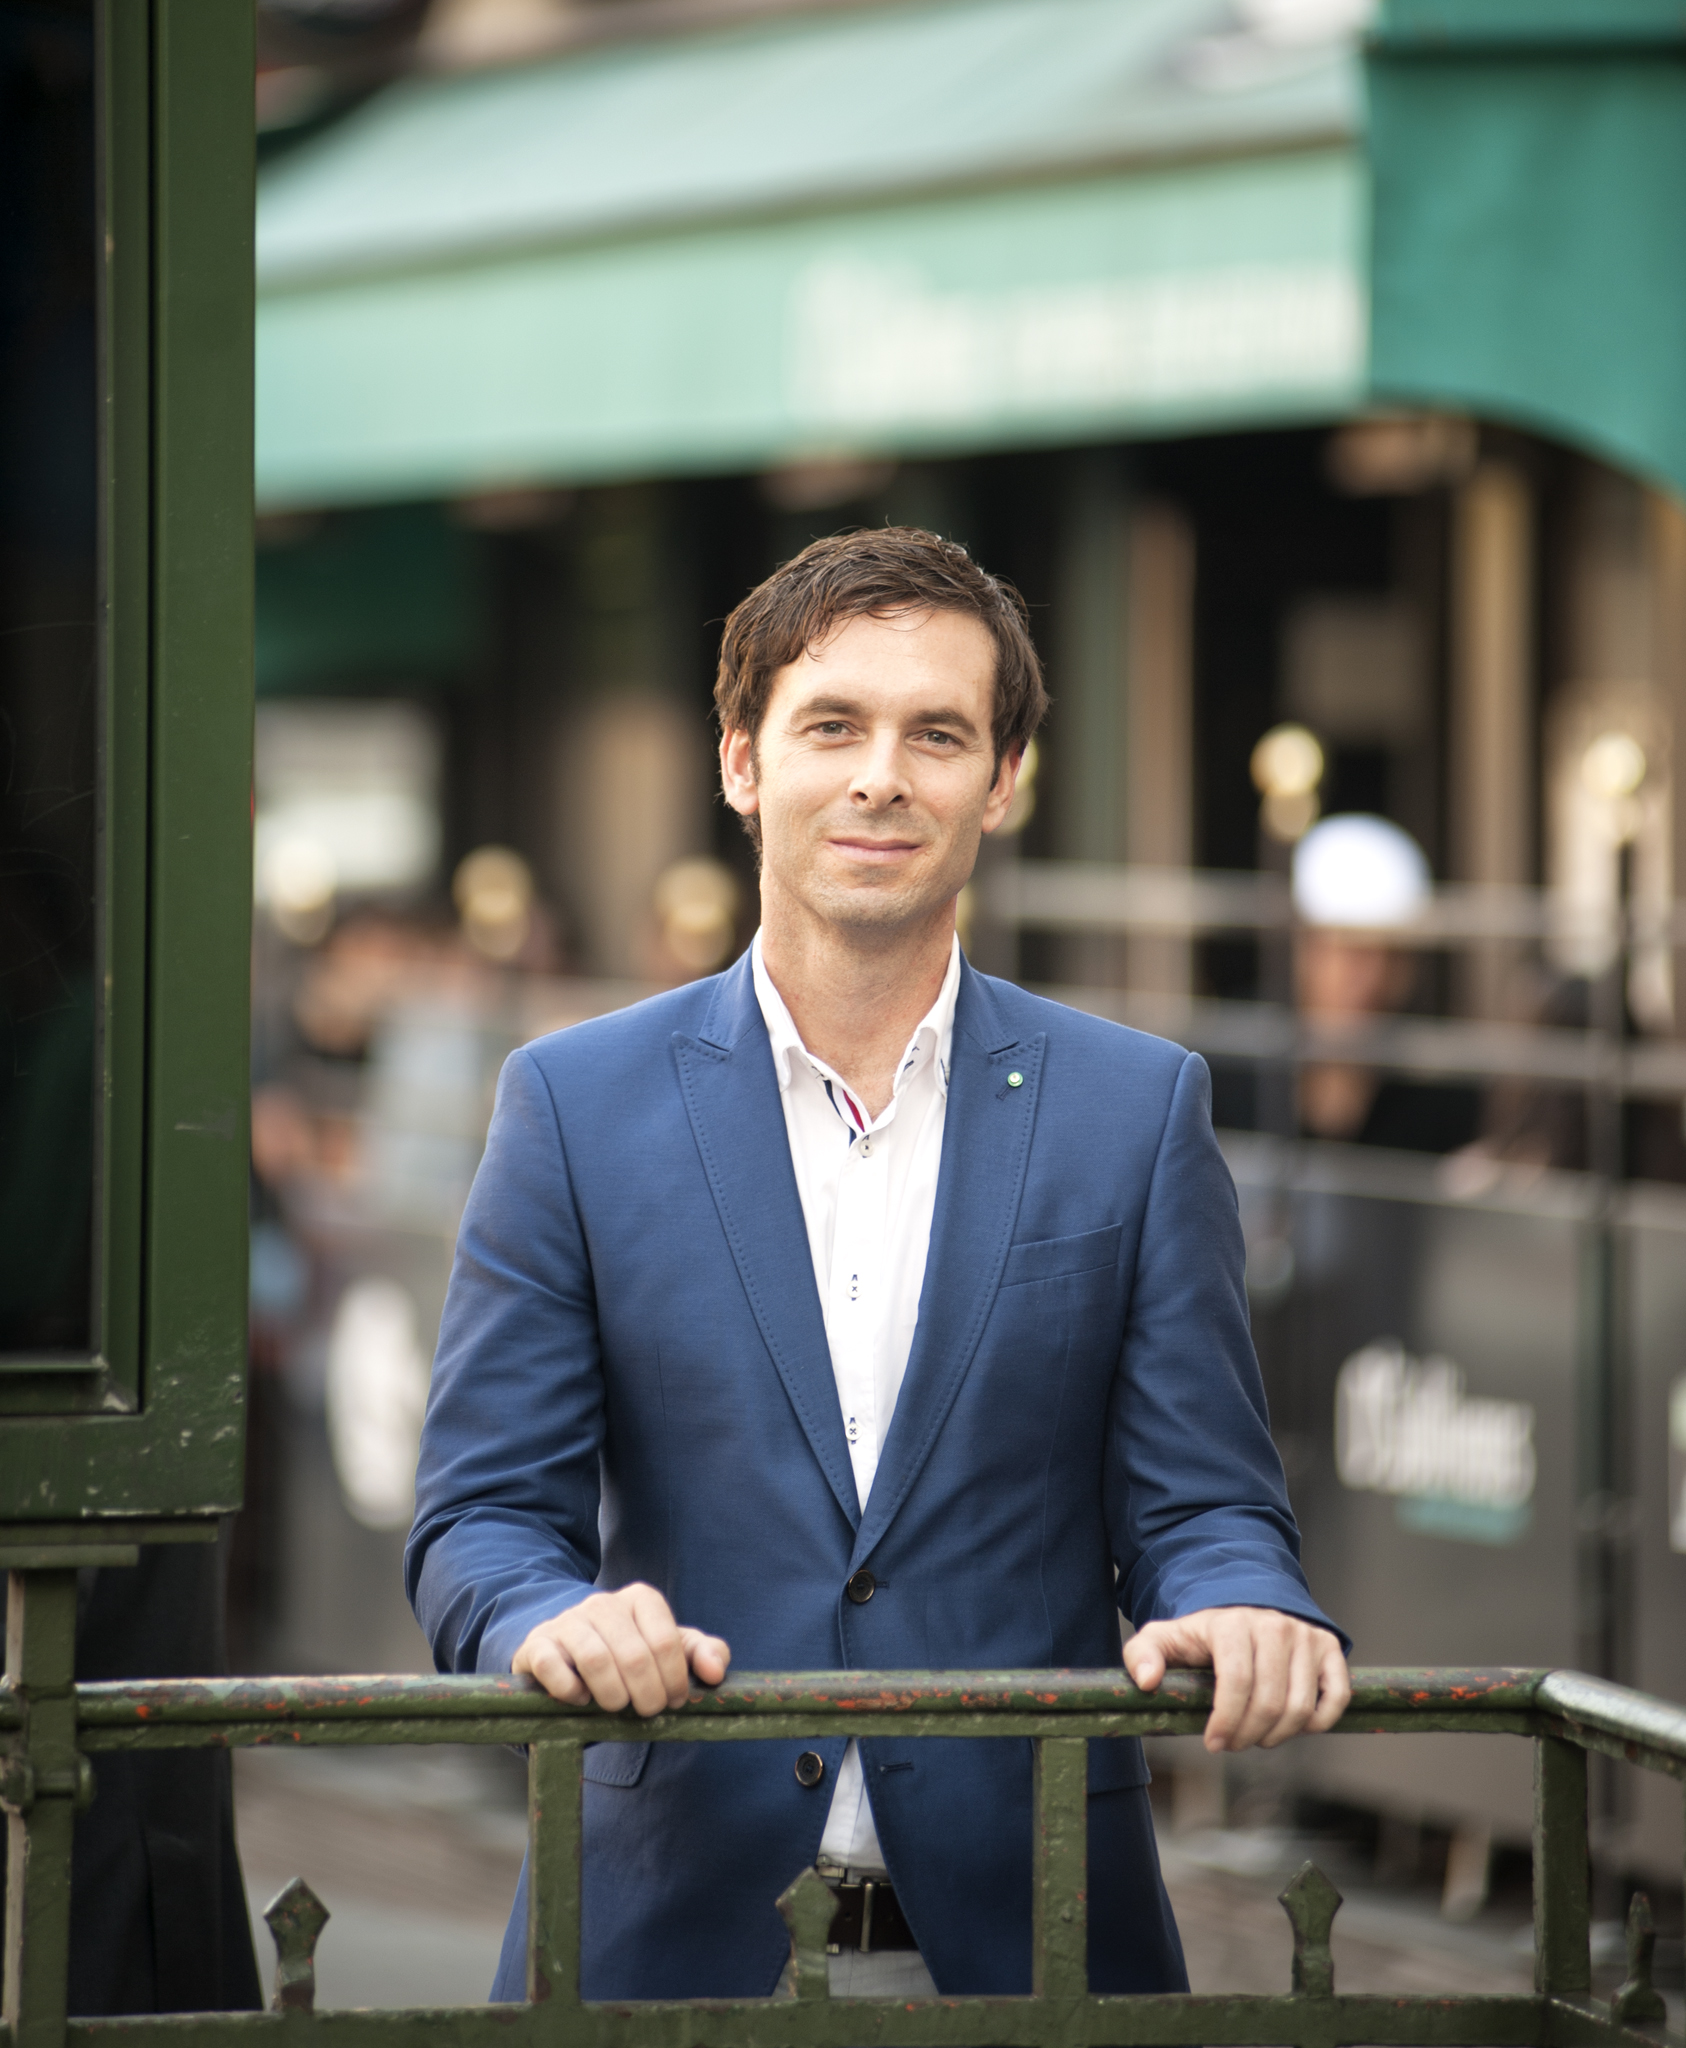 Santiago Garcia Solimei, Global Director of Social Media, Meliá Hotels International oversees influencer marketing for the resort and city hotel operator